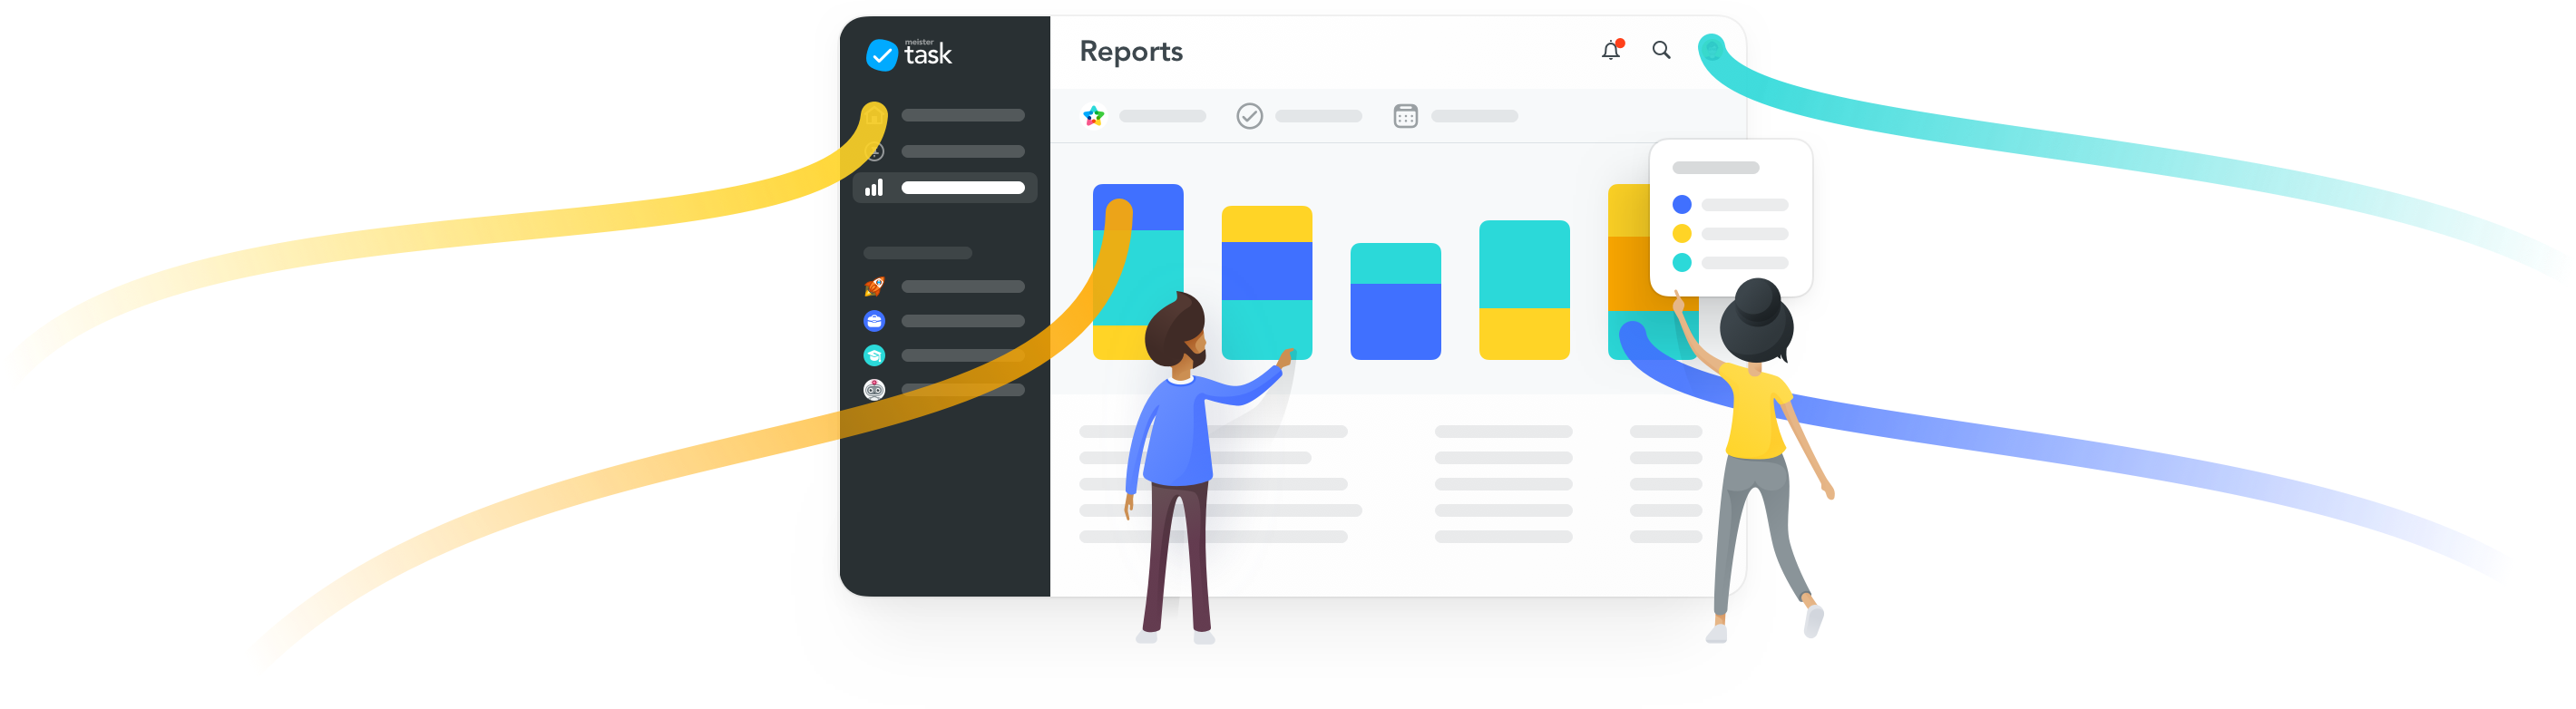 reports, meistertask reports, project report, kanban project report